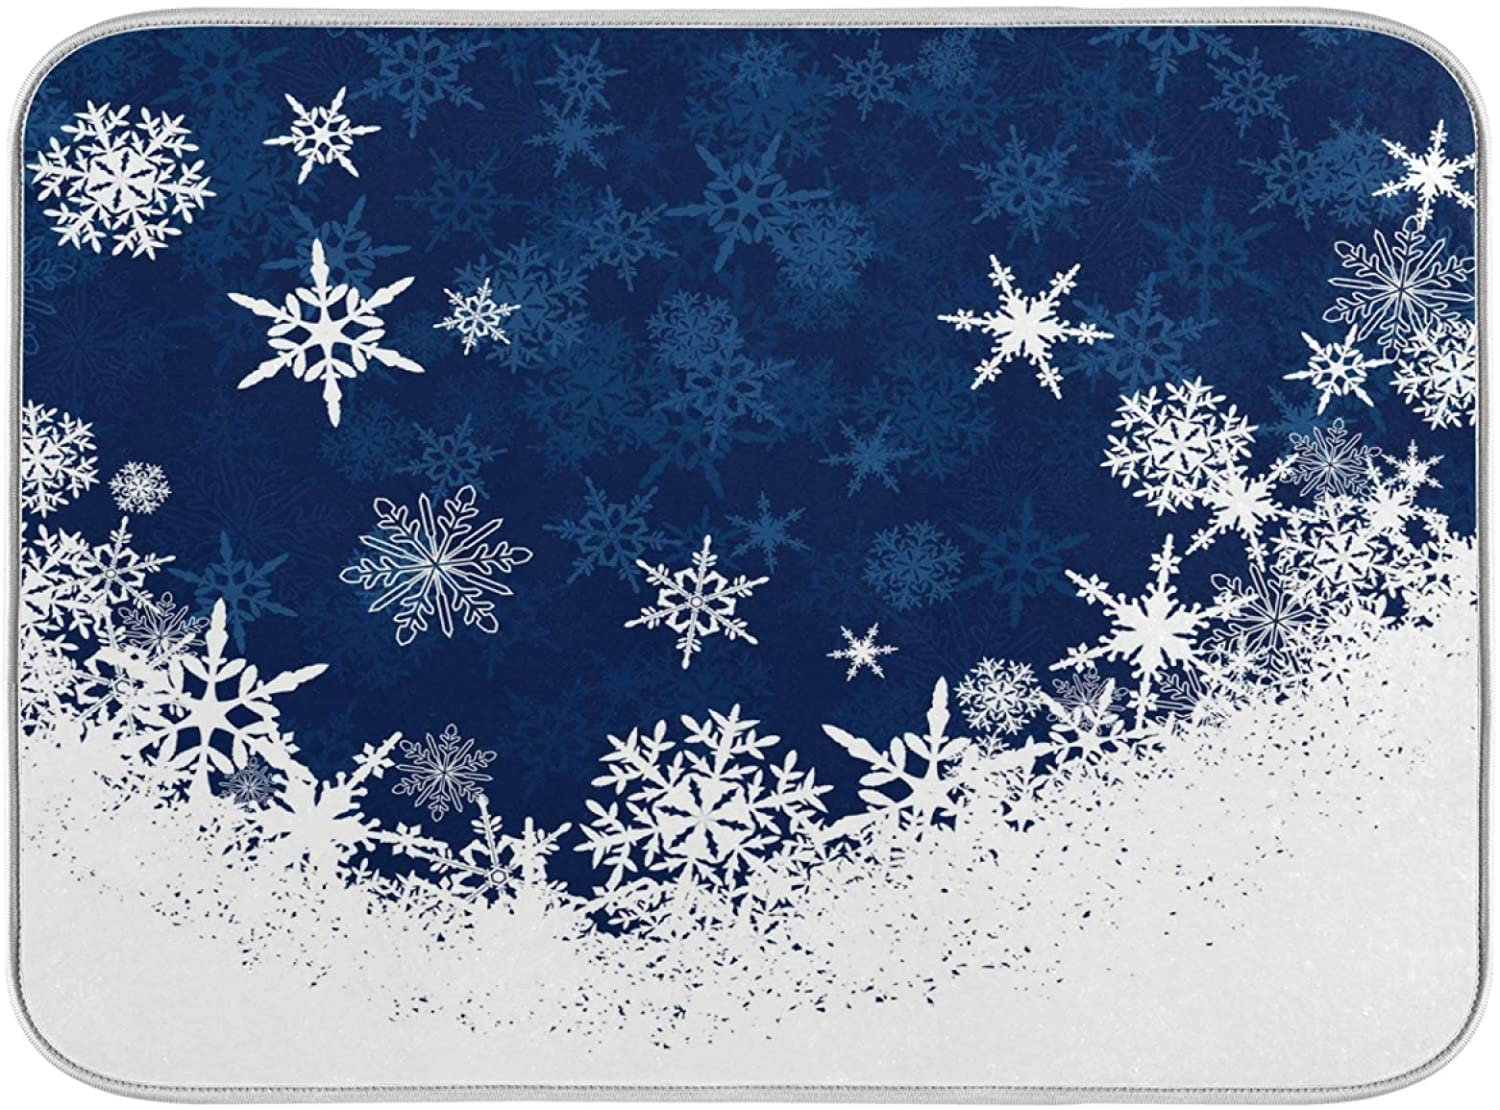 Oarenol Snowflake Dish Drying Mat Christmas Winter Snowy Blue Large 18 x 24 Inch Reversible Drying Mat for Kitchen Counter